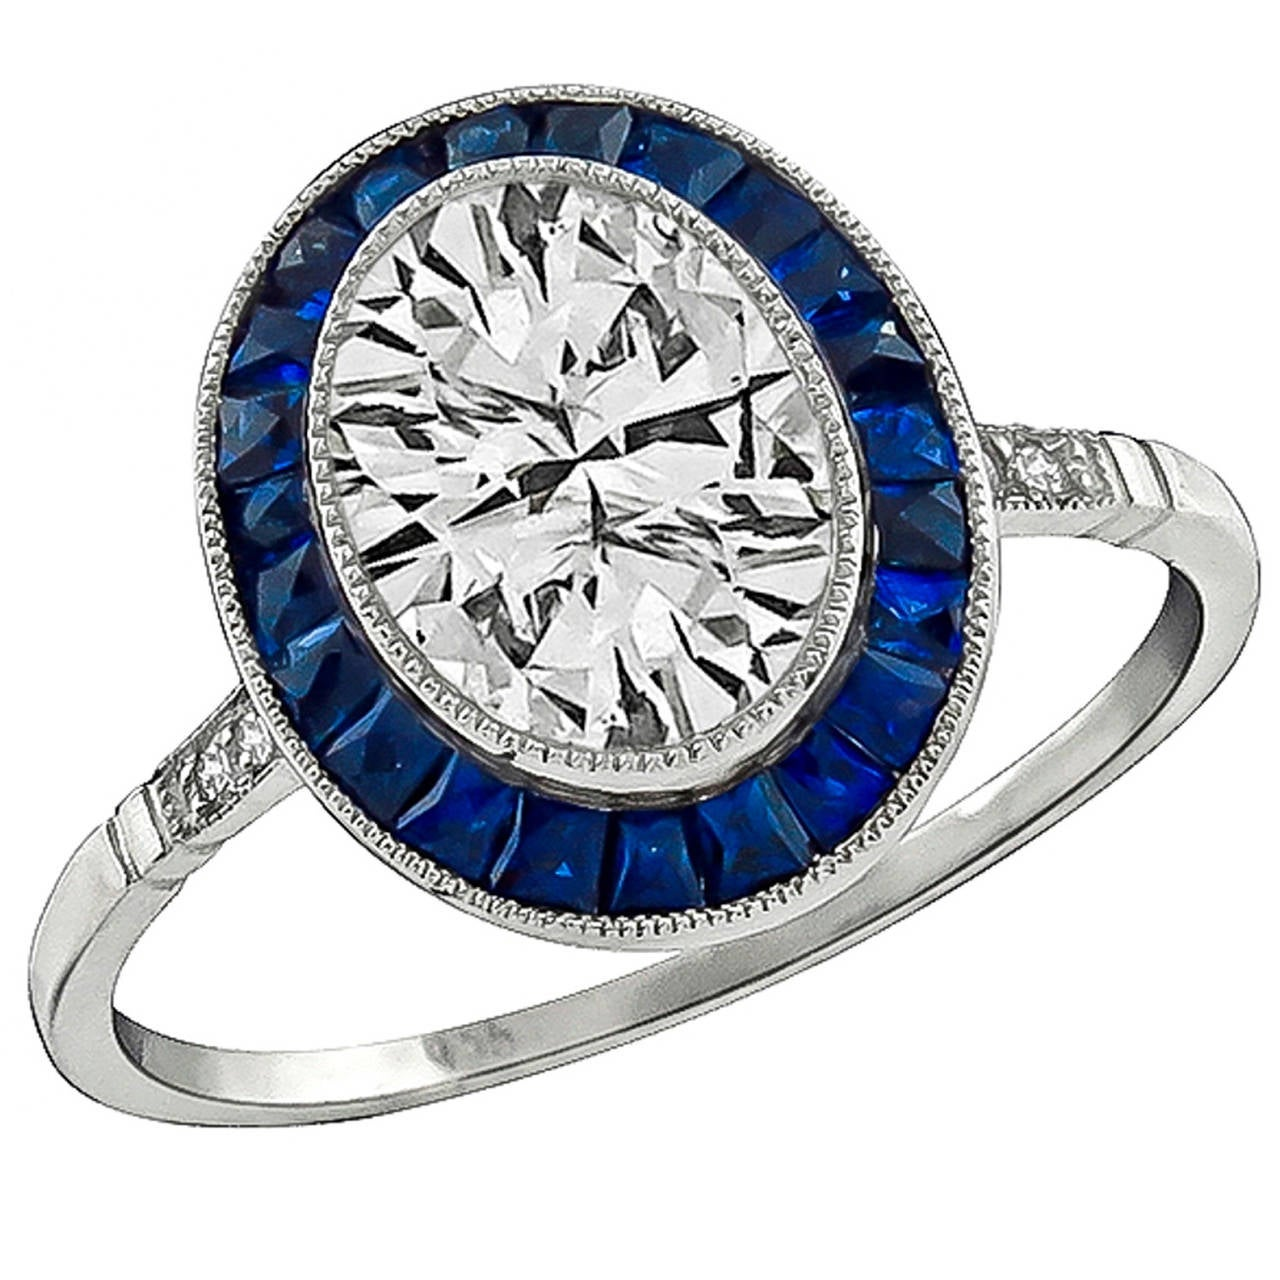 1 56 Carat Oval Cut Diamond Sapphire Halo Ring For Sale At